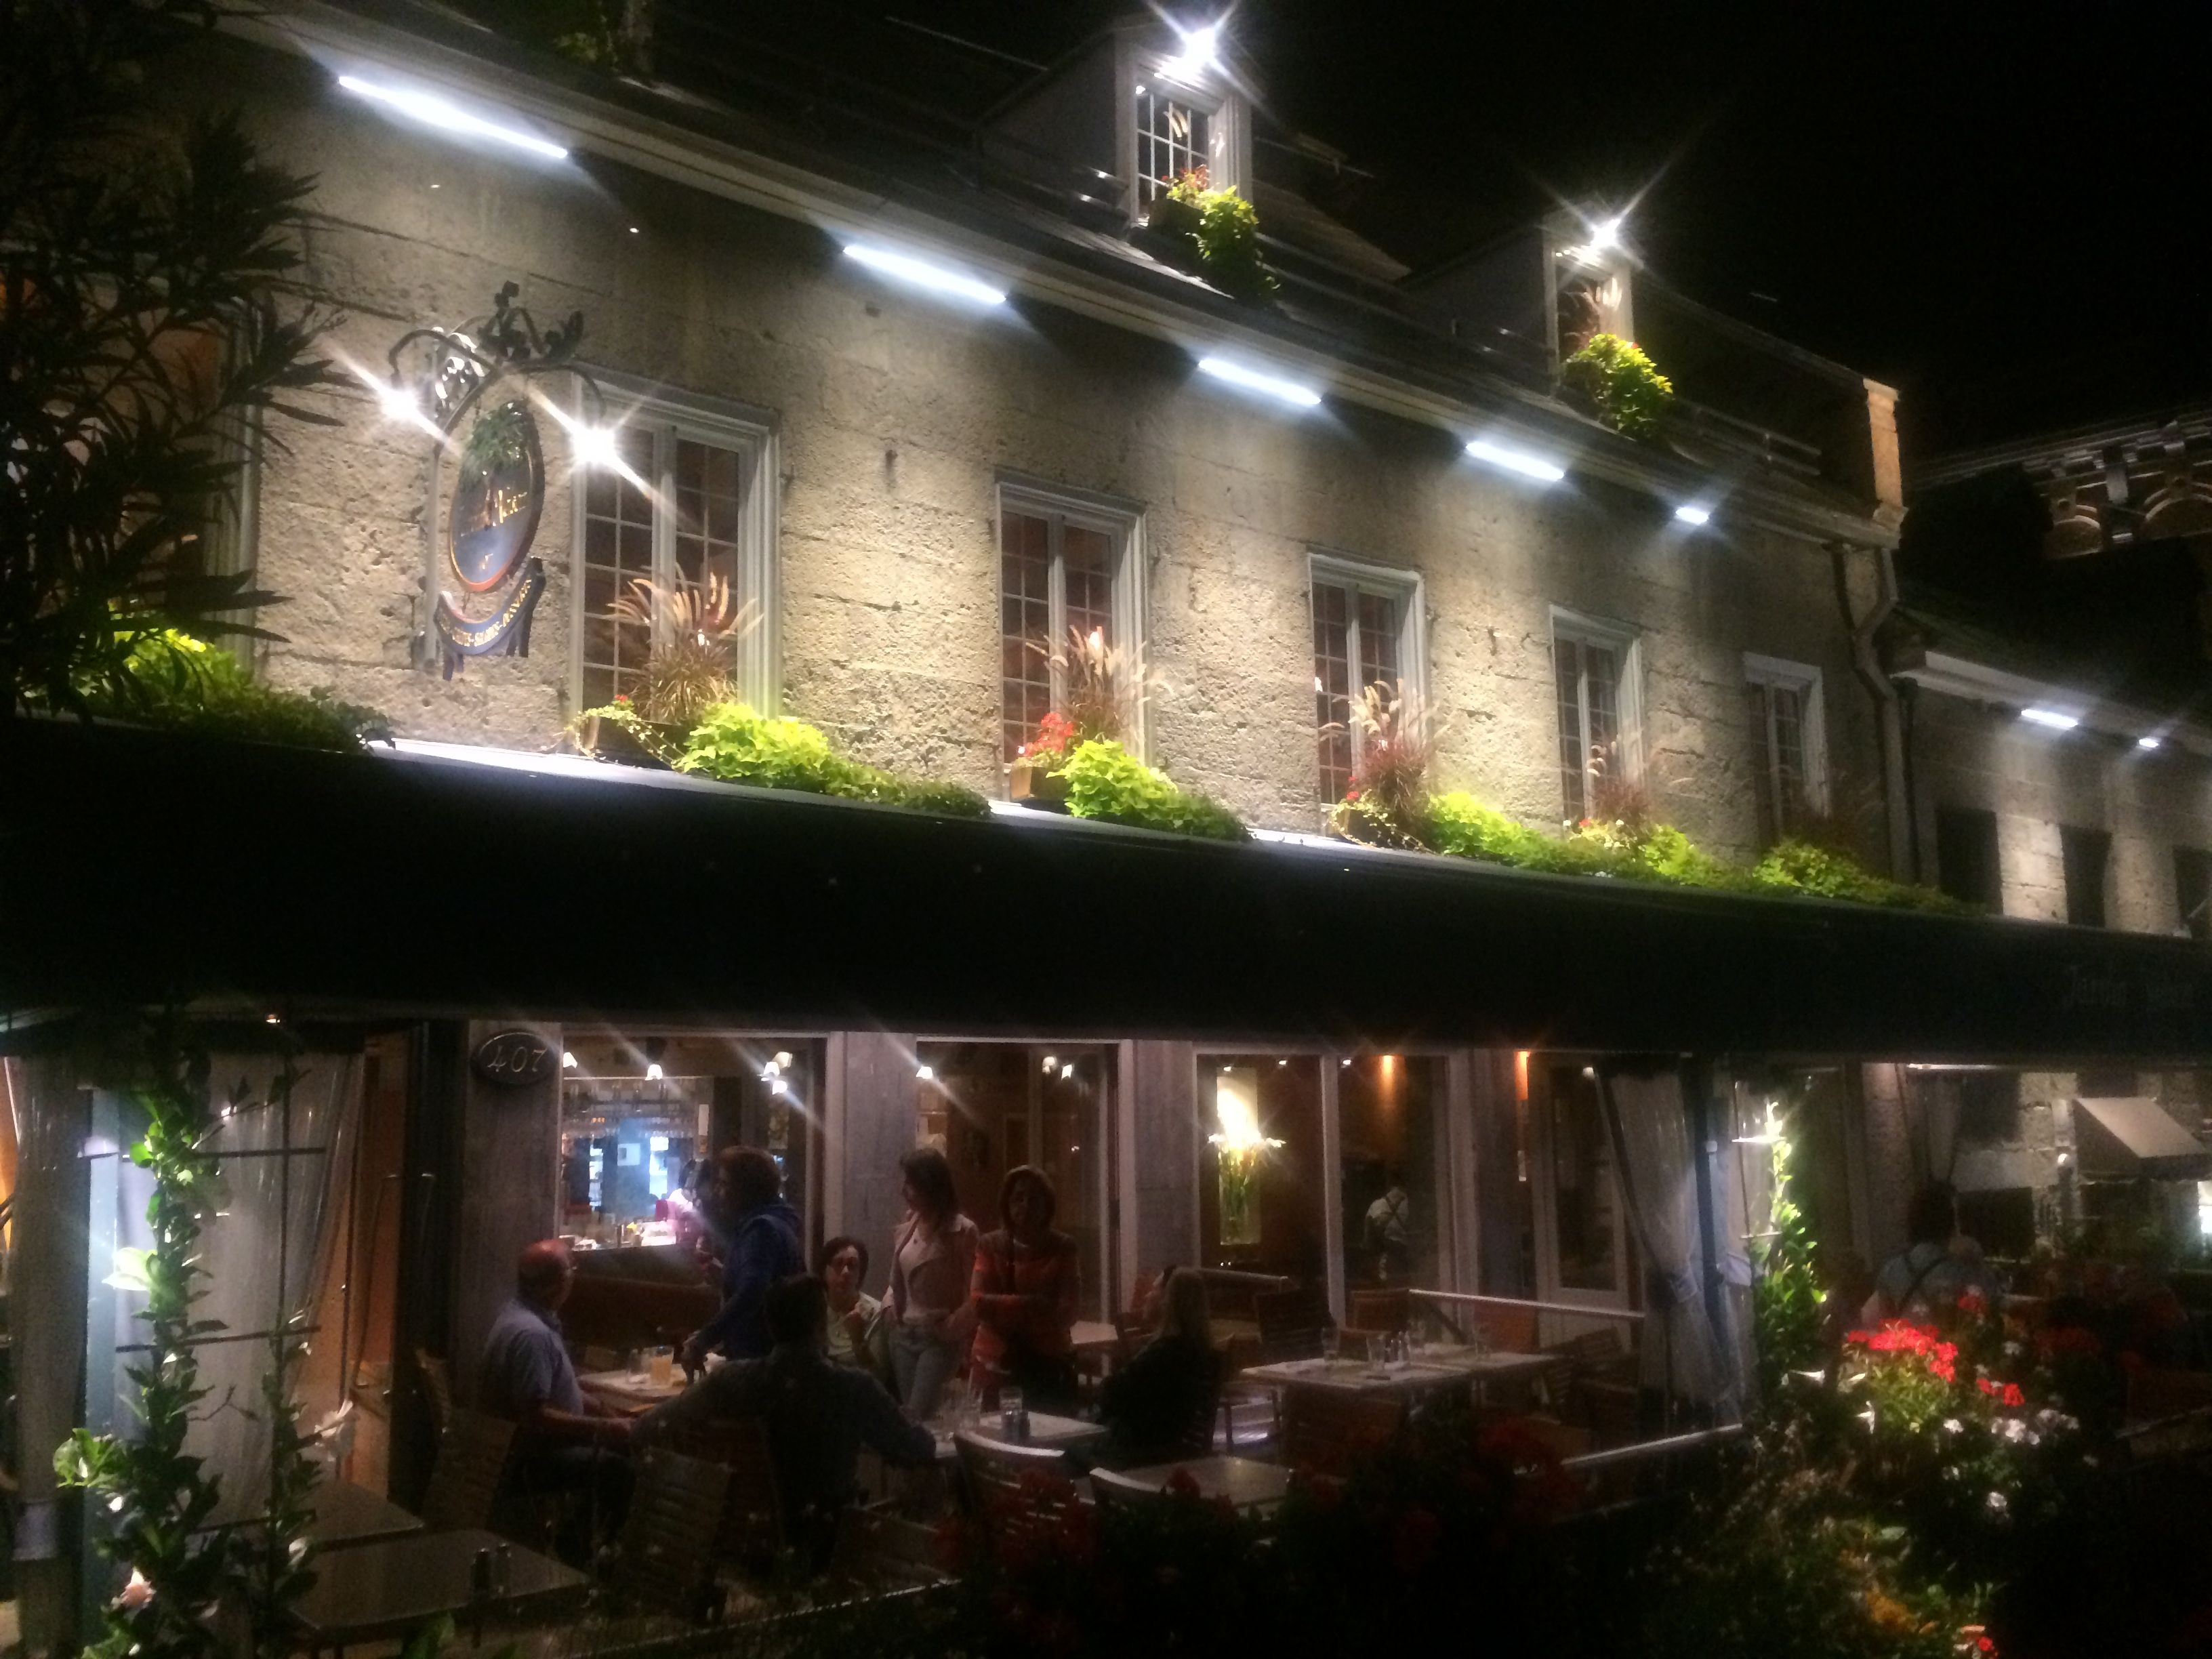 Hotel Nelson - we had a great dinner on their terrasse